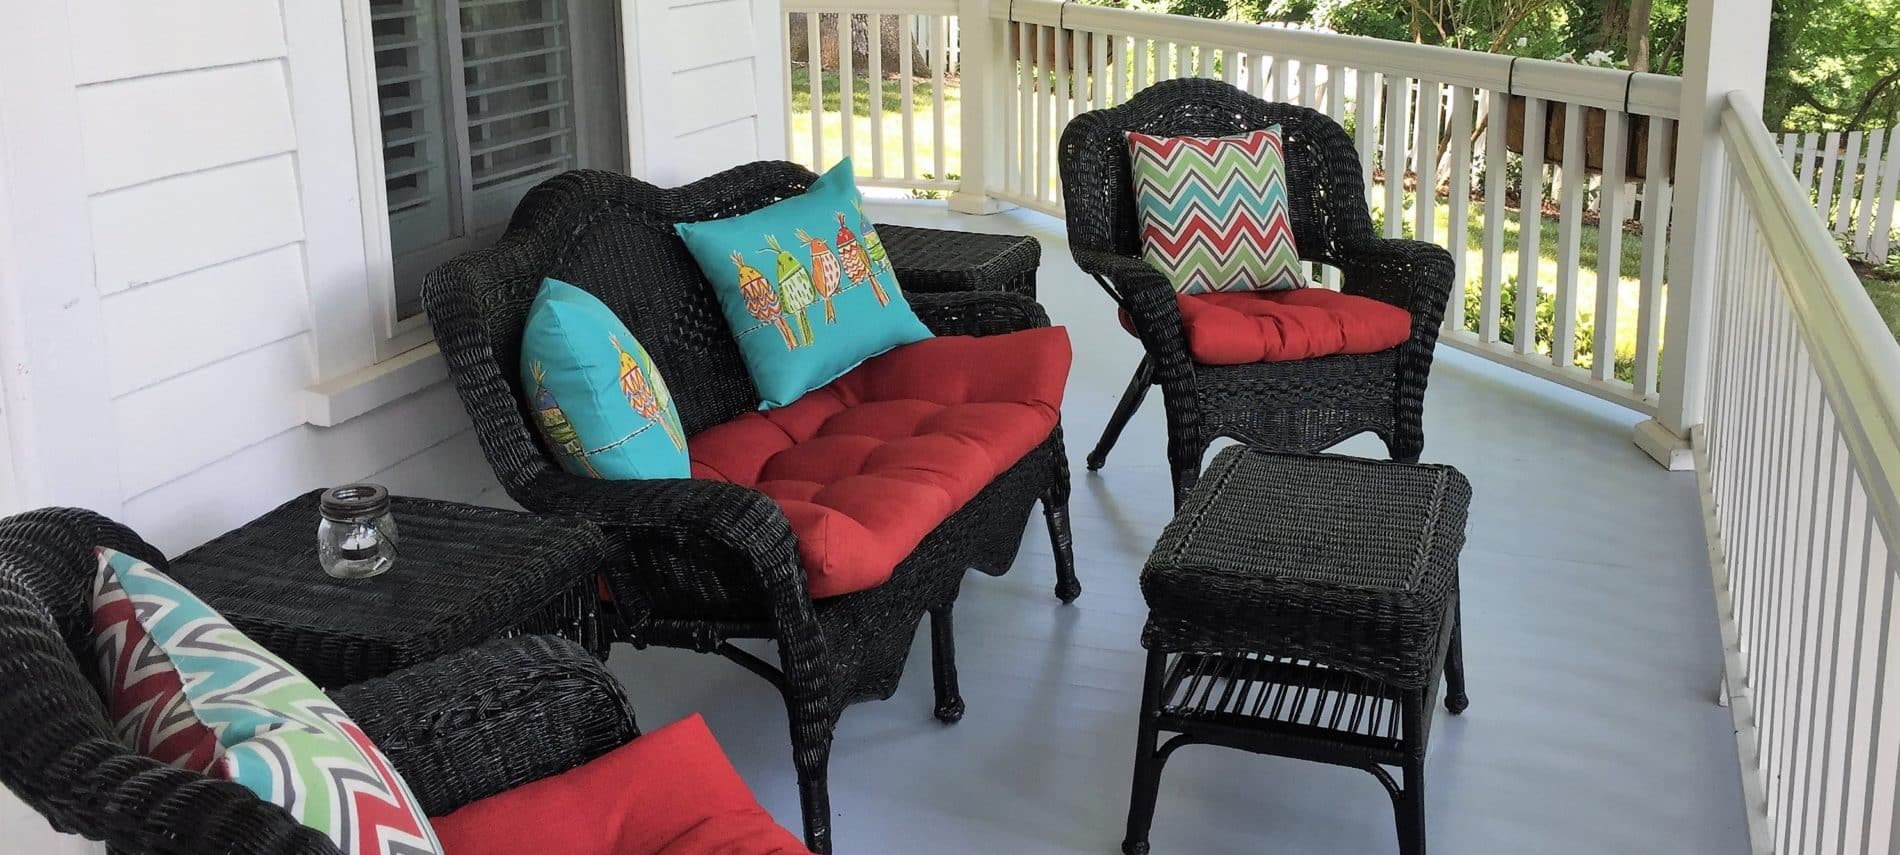 Dark wicker chairs and loveseat with small table with red cusions and vibrant bule and green pillows on outdoor front porch